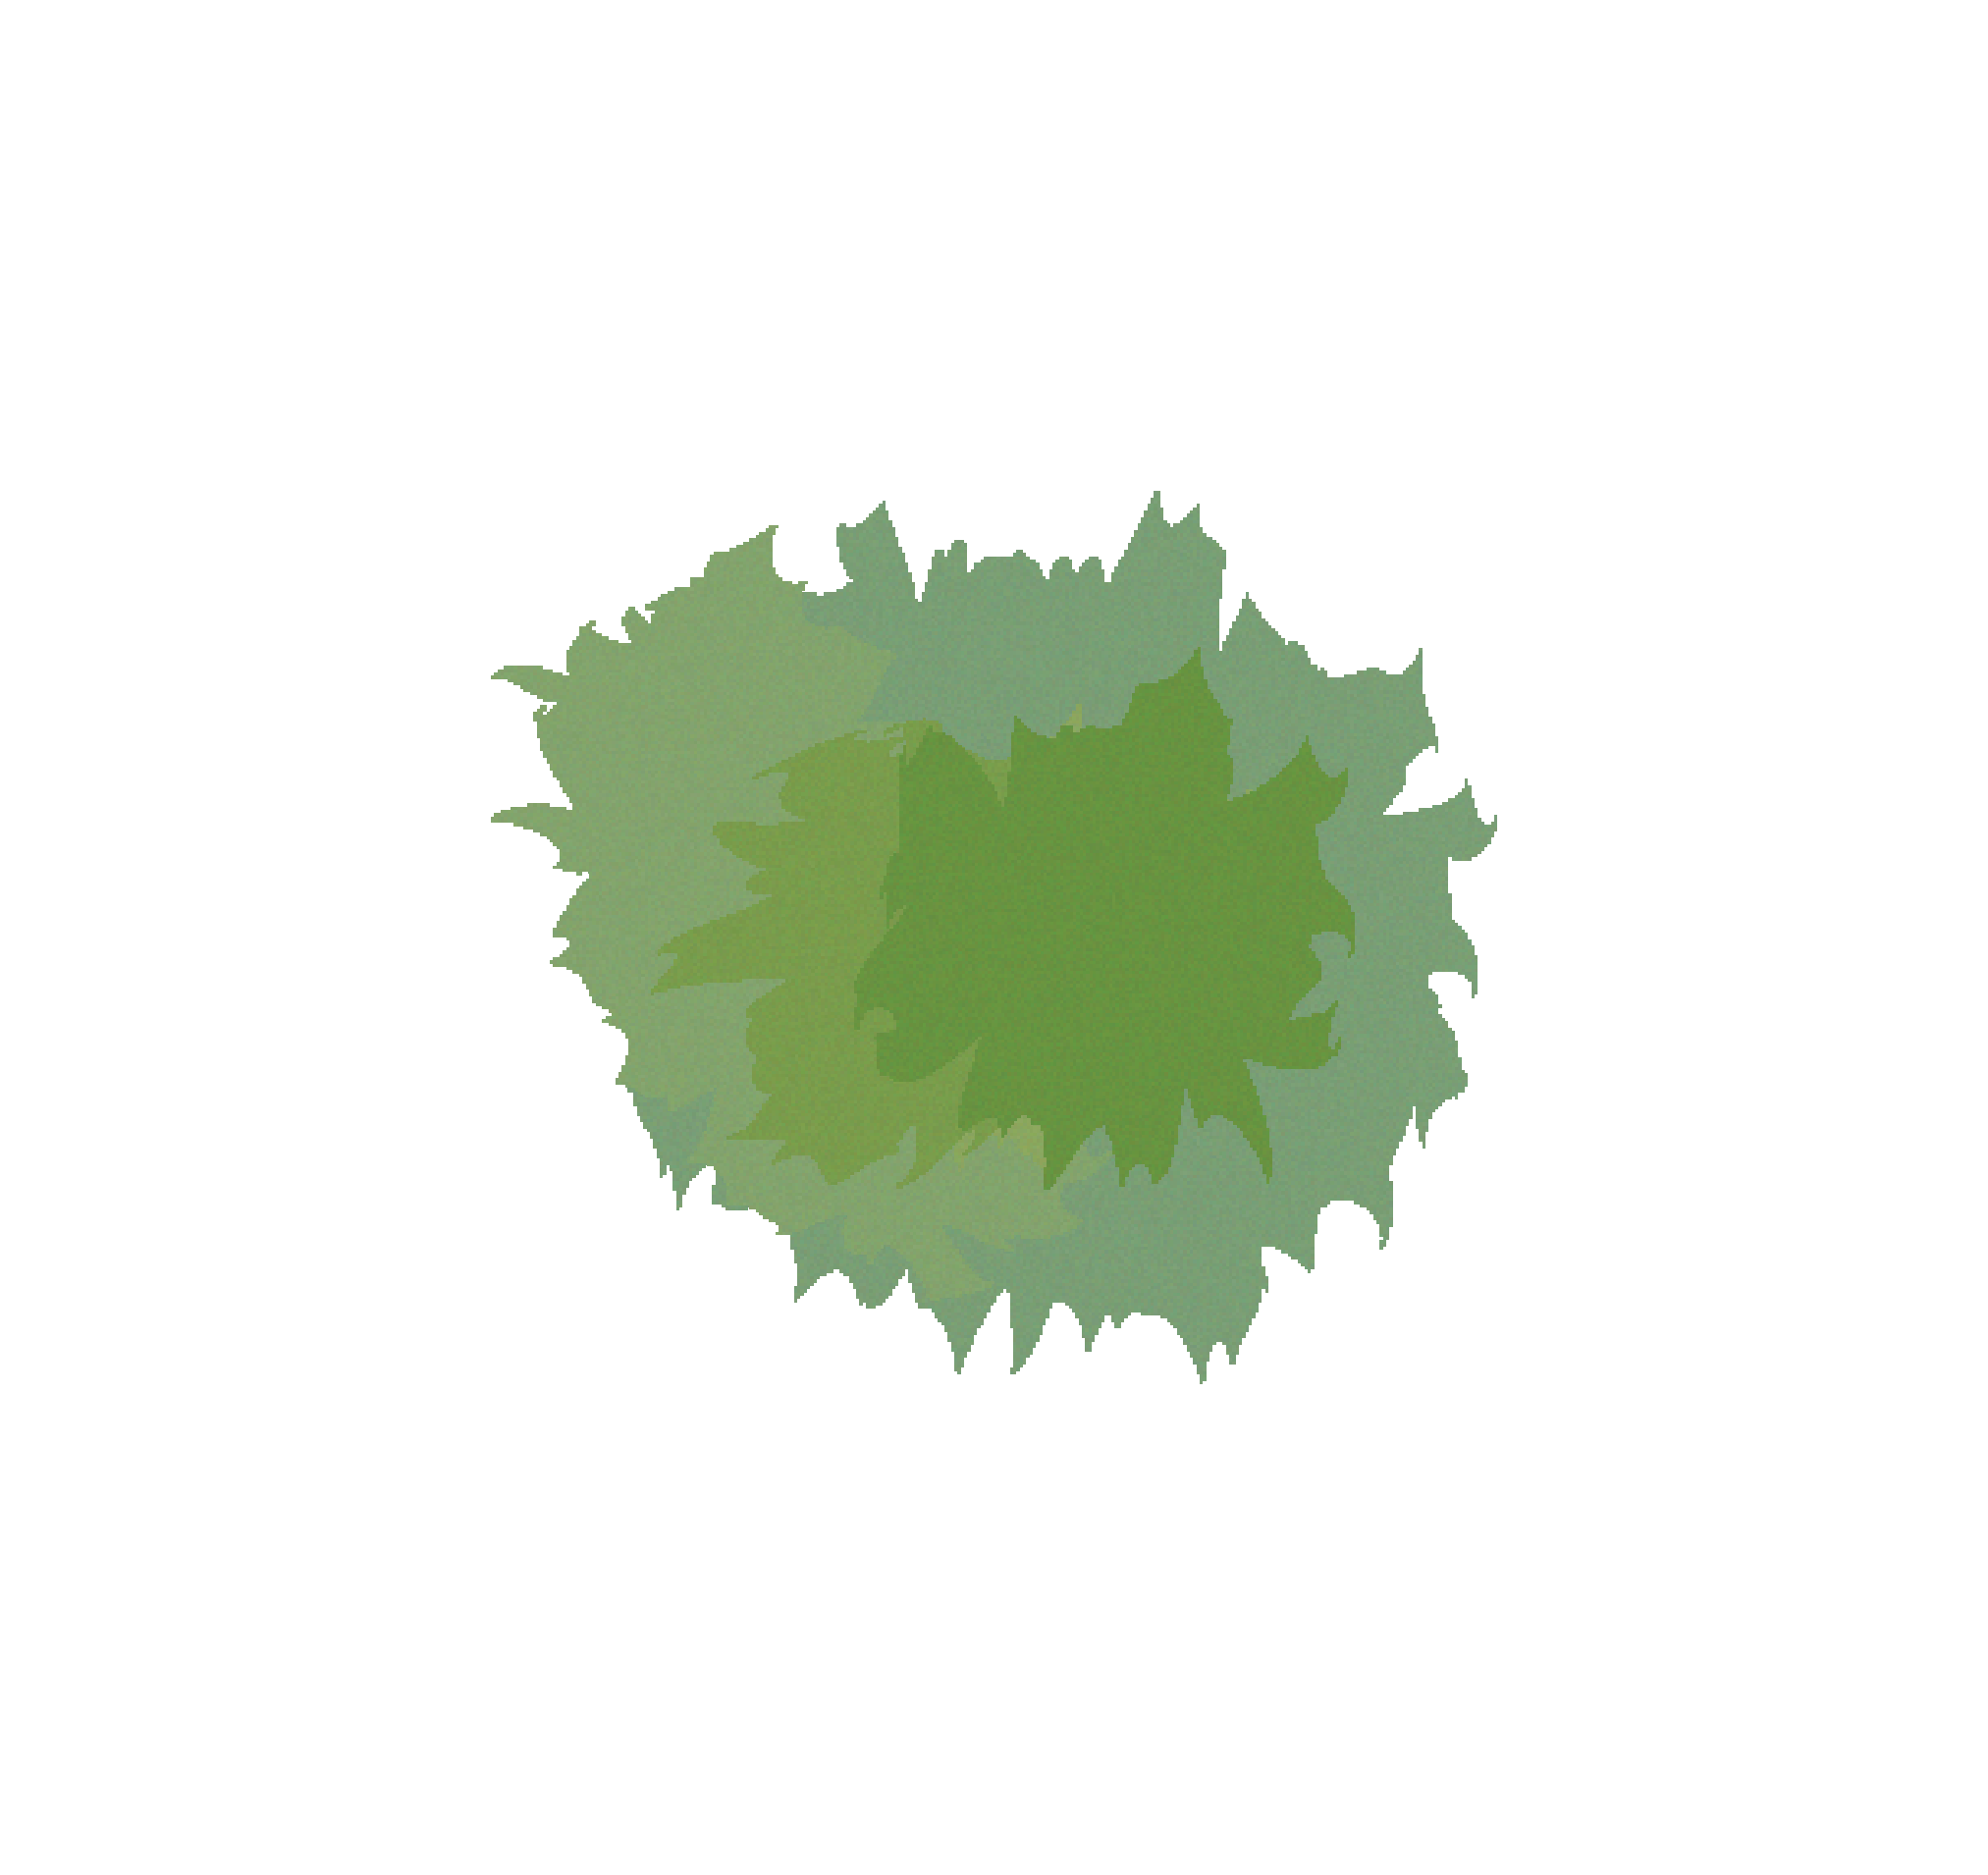 Clipart turtle eye. Tree free images at